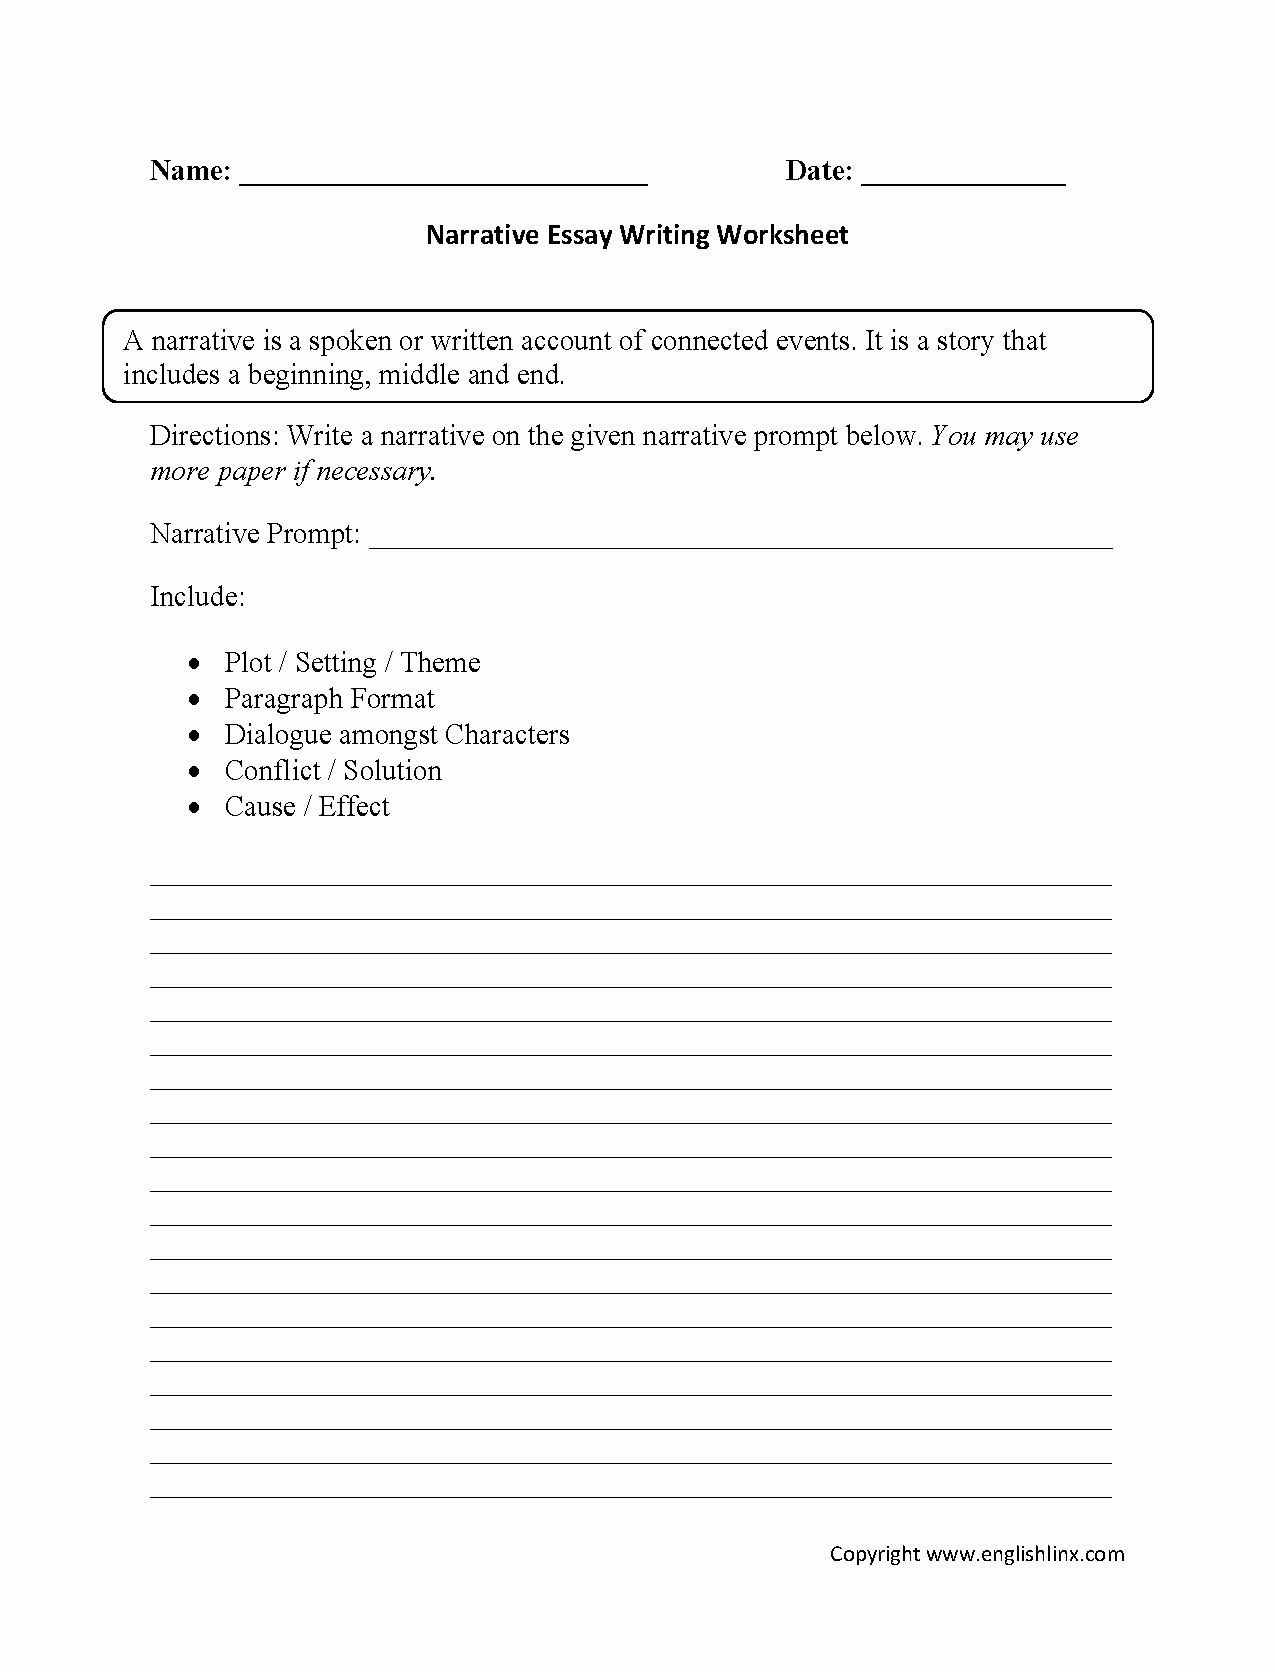 Dialogue Worksheets 4th Grade Lovely 10 Best Of Dialogue Worksheet 4th Grade Worksheet